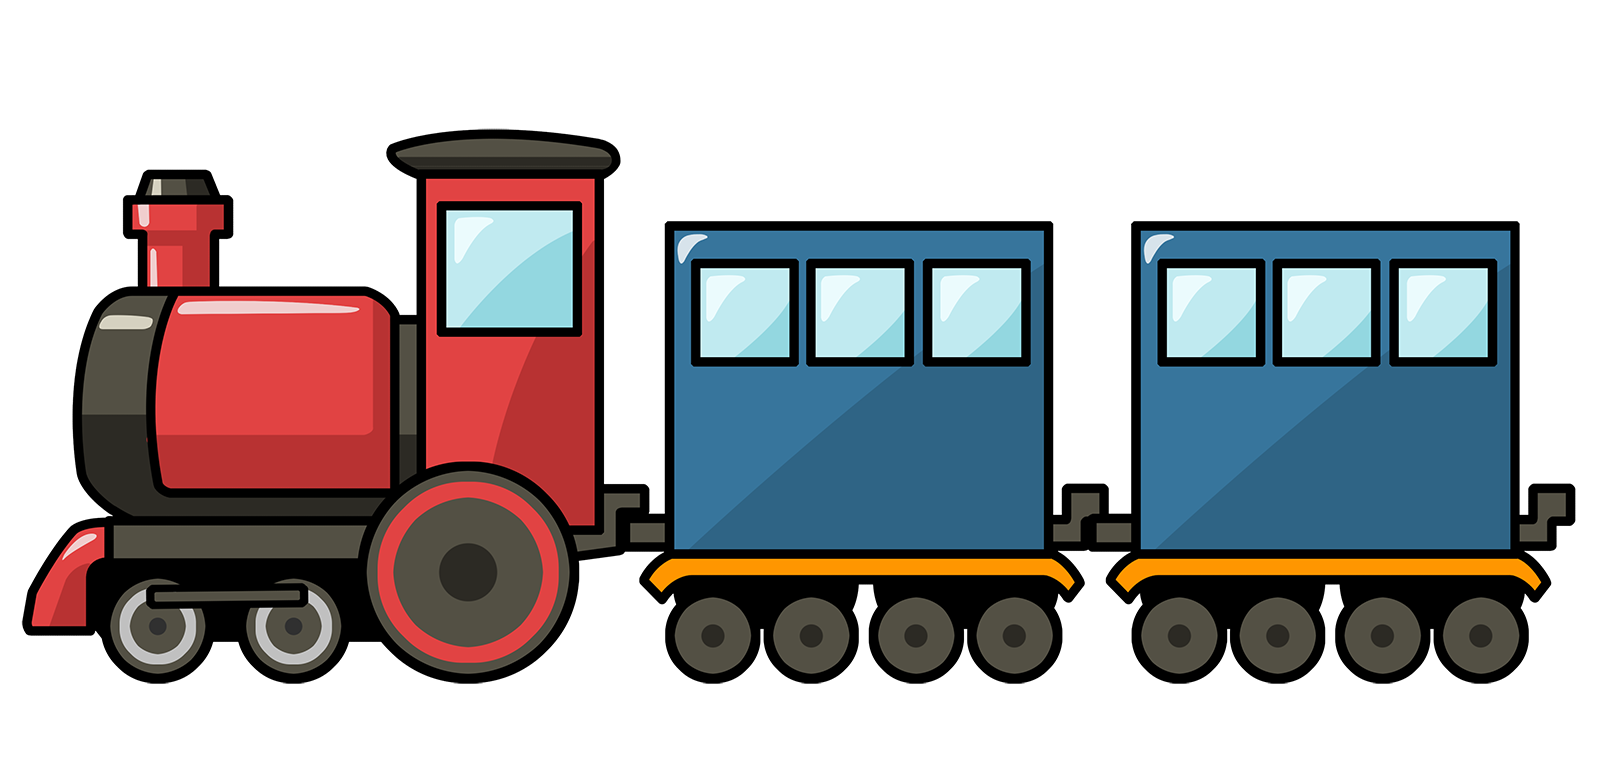 Game clipart animated. Choo travel tales feeds